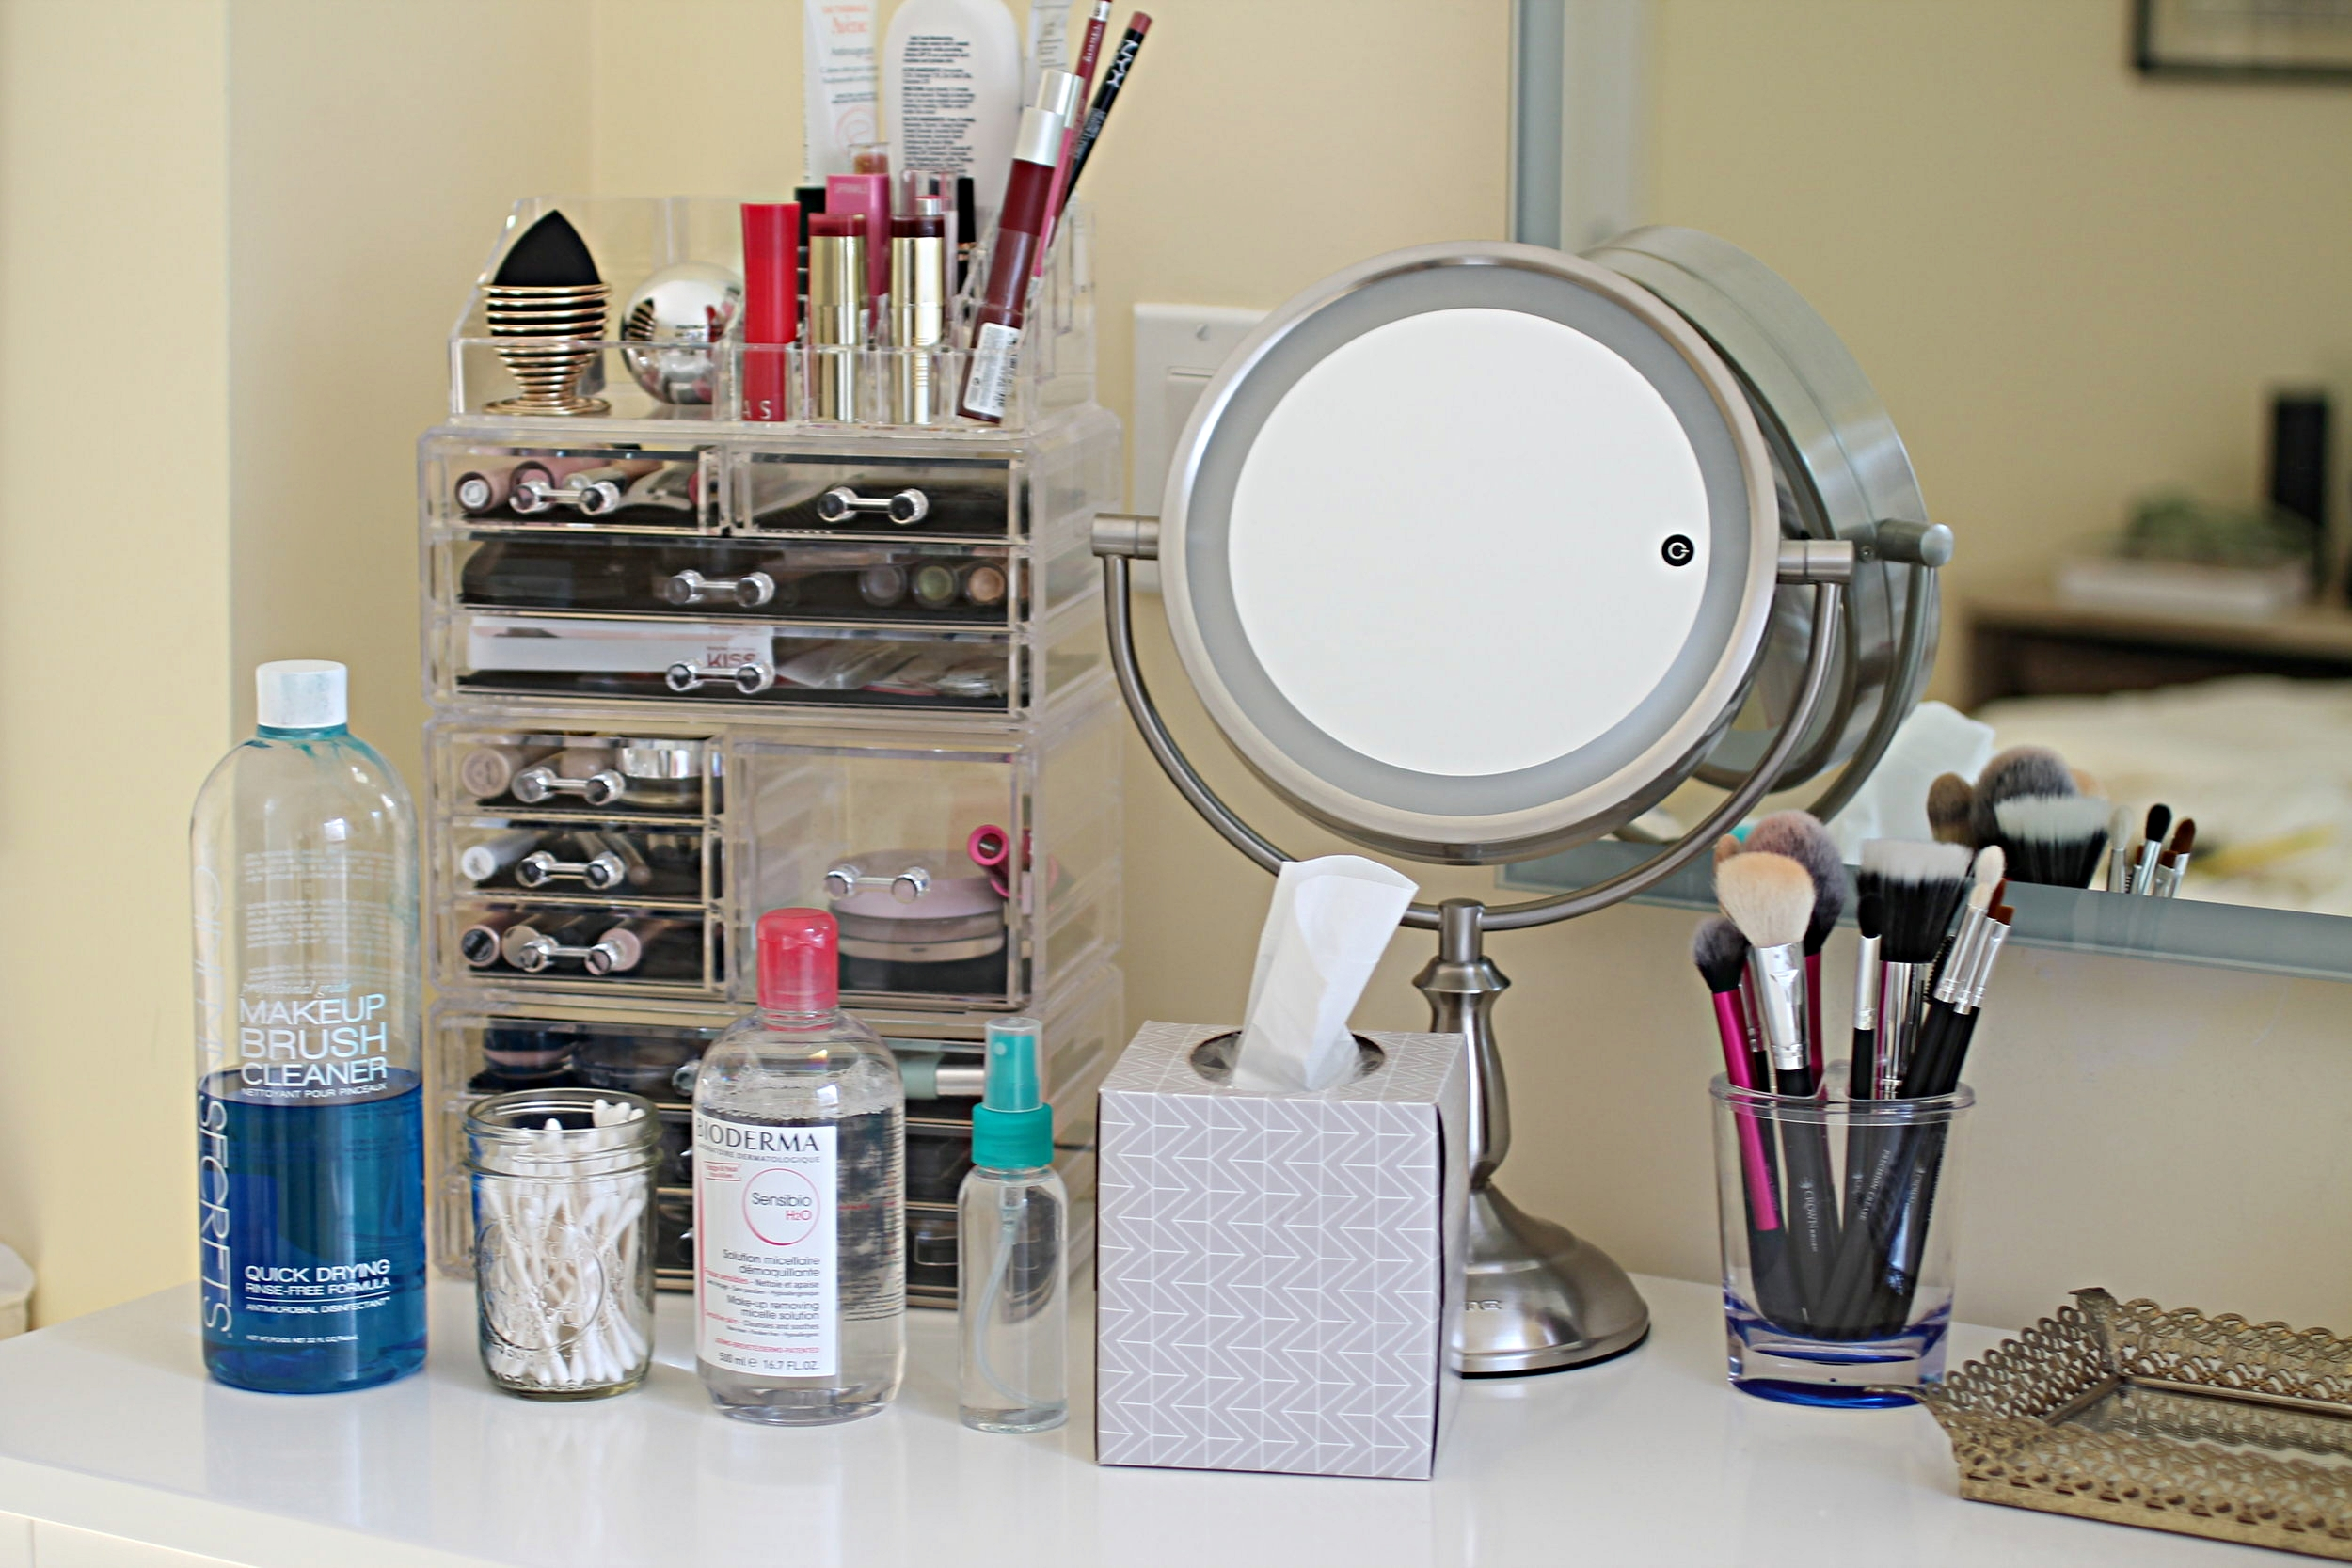 WARNING: - This is an unedited, relatively non-posed photo taken in the few quiet moments between naptime and snack time. Even though I'm a makeup artist, my space and time is limited. These non-makeup beauty essentials may not be pinterest worthy, but they help me do my makeup effortlessly.